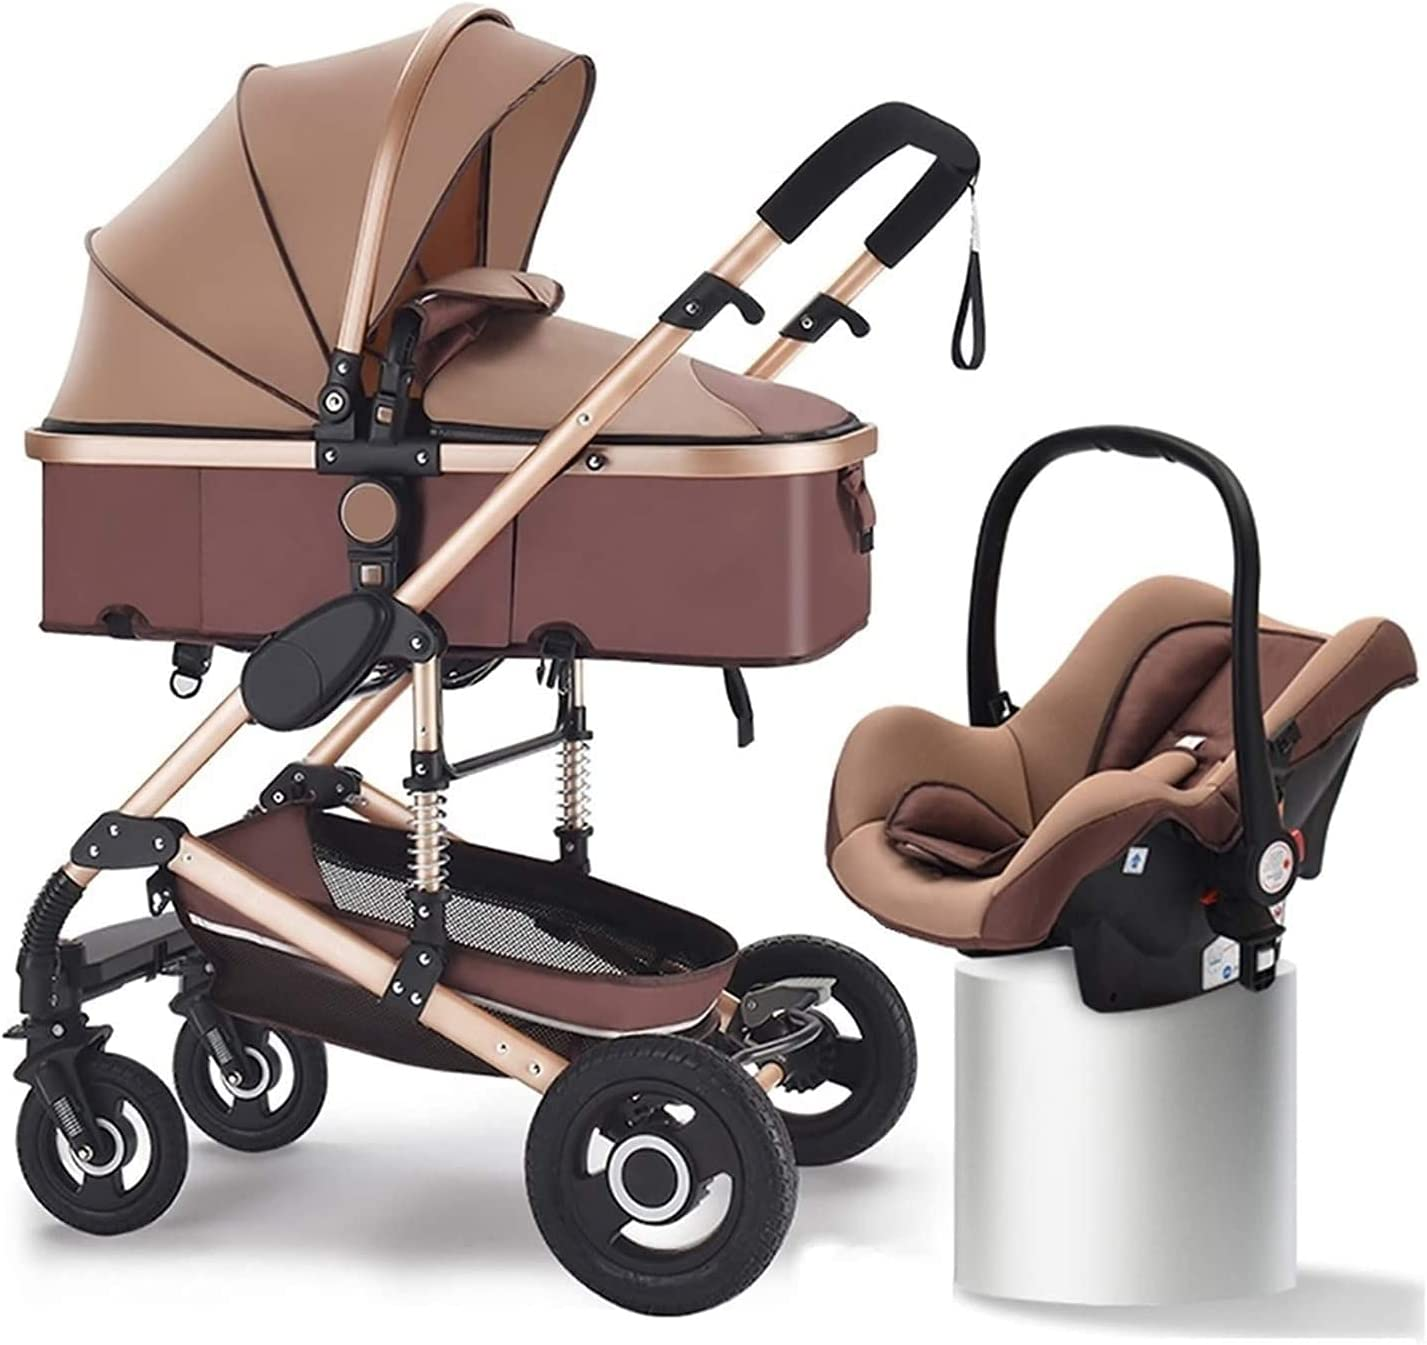 Yuansr 3 in 1 Baby Stroller Carriage Luxury Ba Sales of SALE items from new works half Foldable